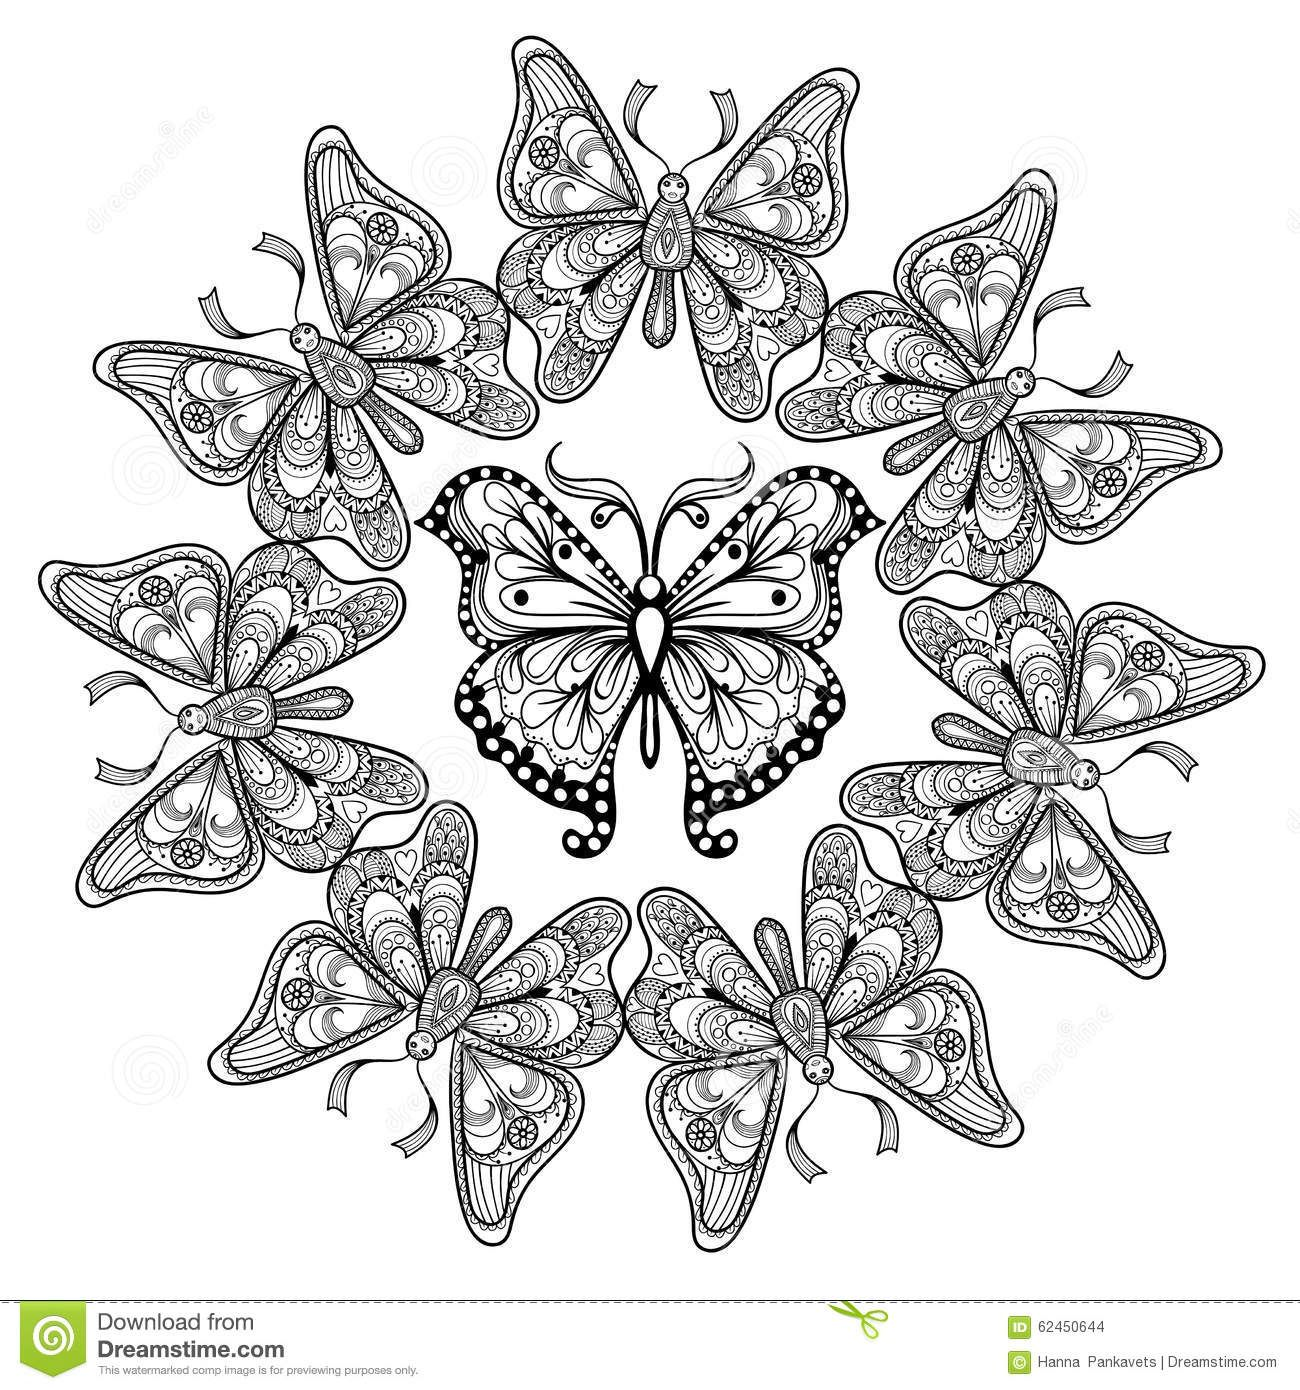 Coloring pages for adults zentangle - Zentangle Butterfly Coloring Pages For Adults